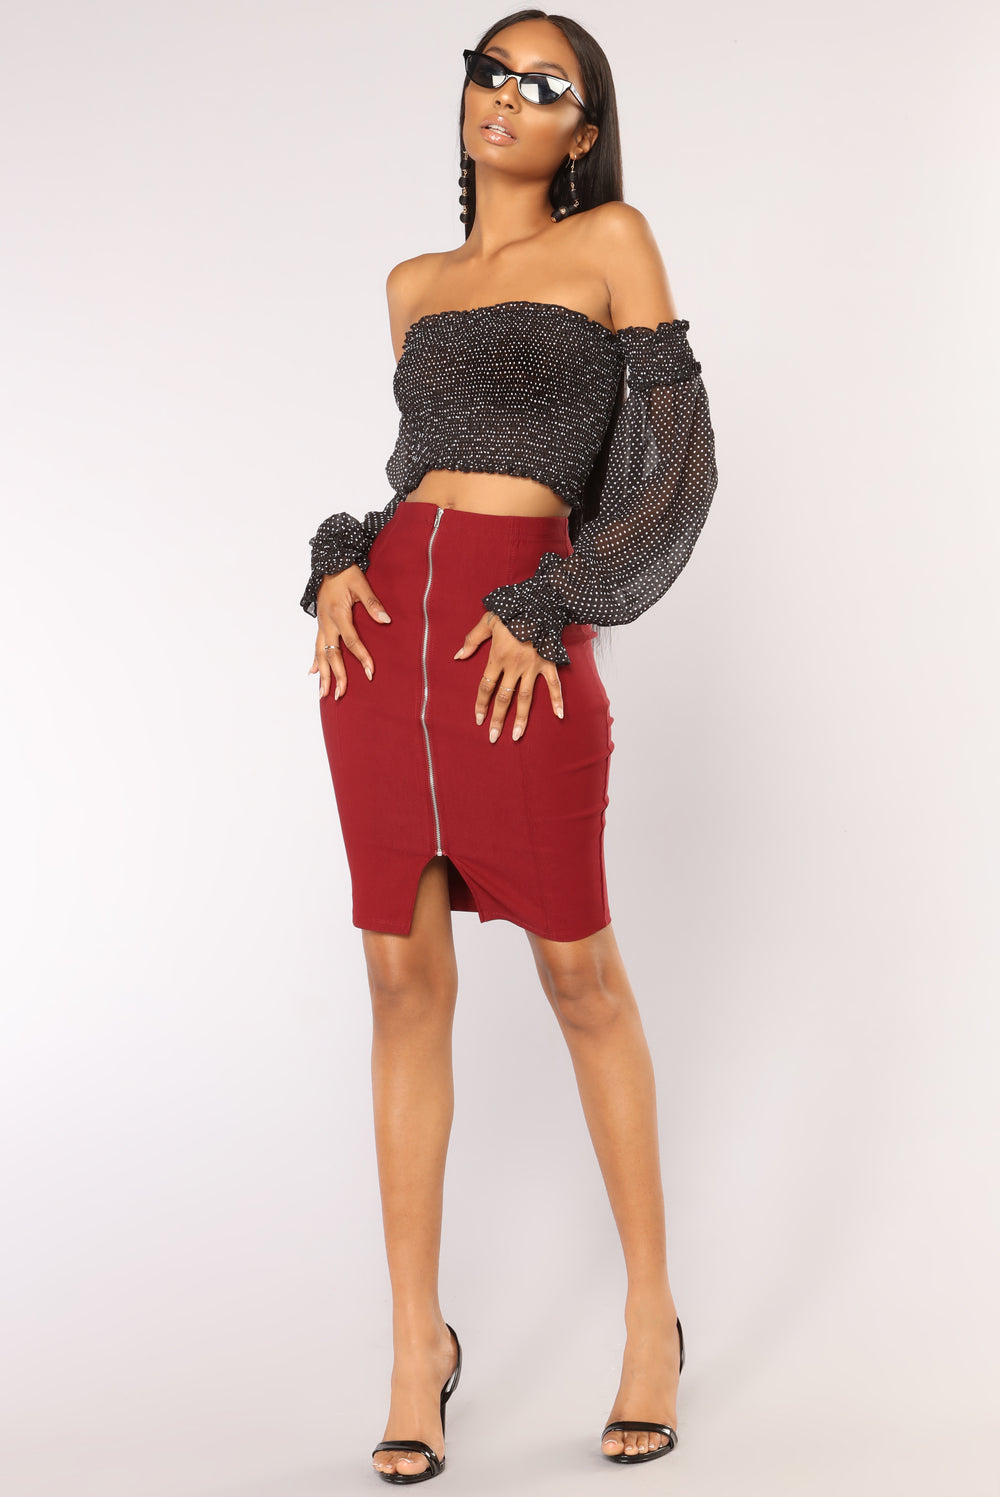 Keep It Zipped Skirt - Wine